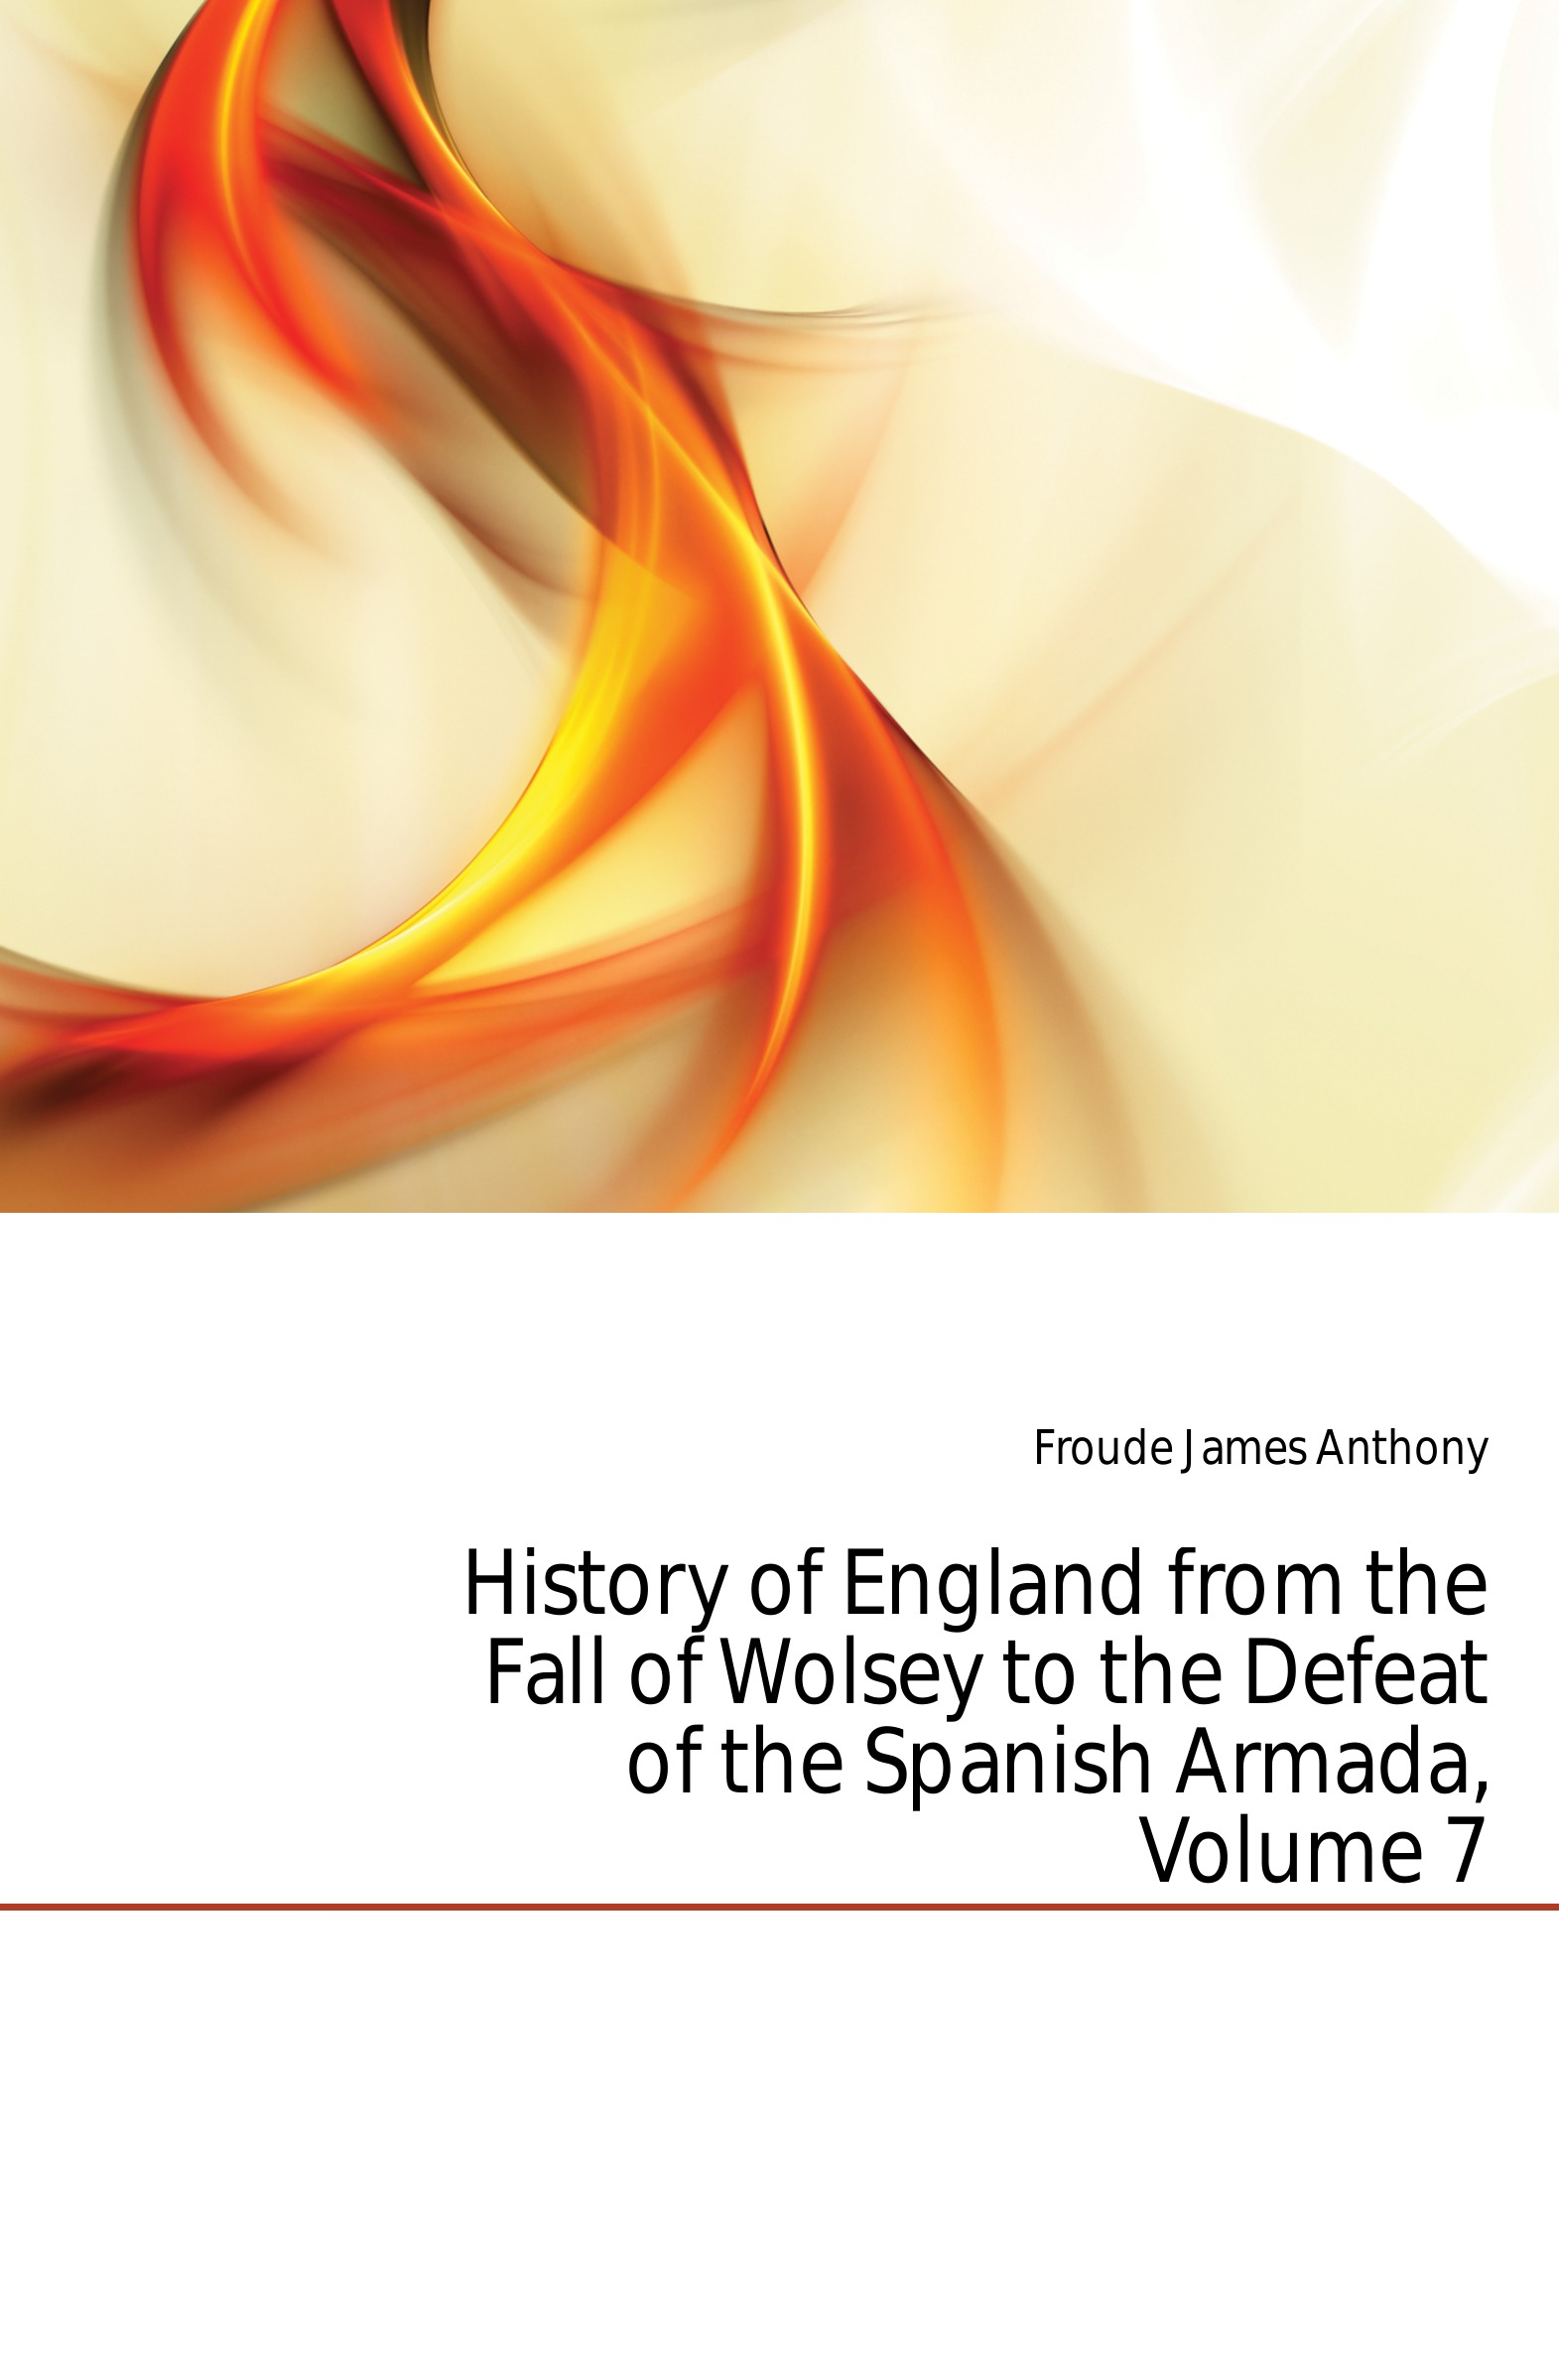 James Anthony Froude History of England from the Fall of Wolsey to the Defeat of the Spanish Armada, Volume 7 froude james anthony history of england from the fall of wolsey to the death of elizabeth vol iii